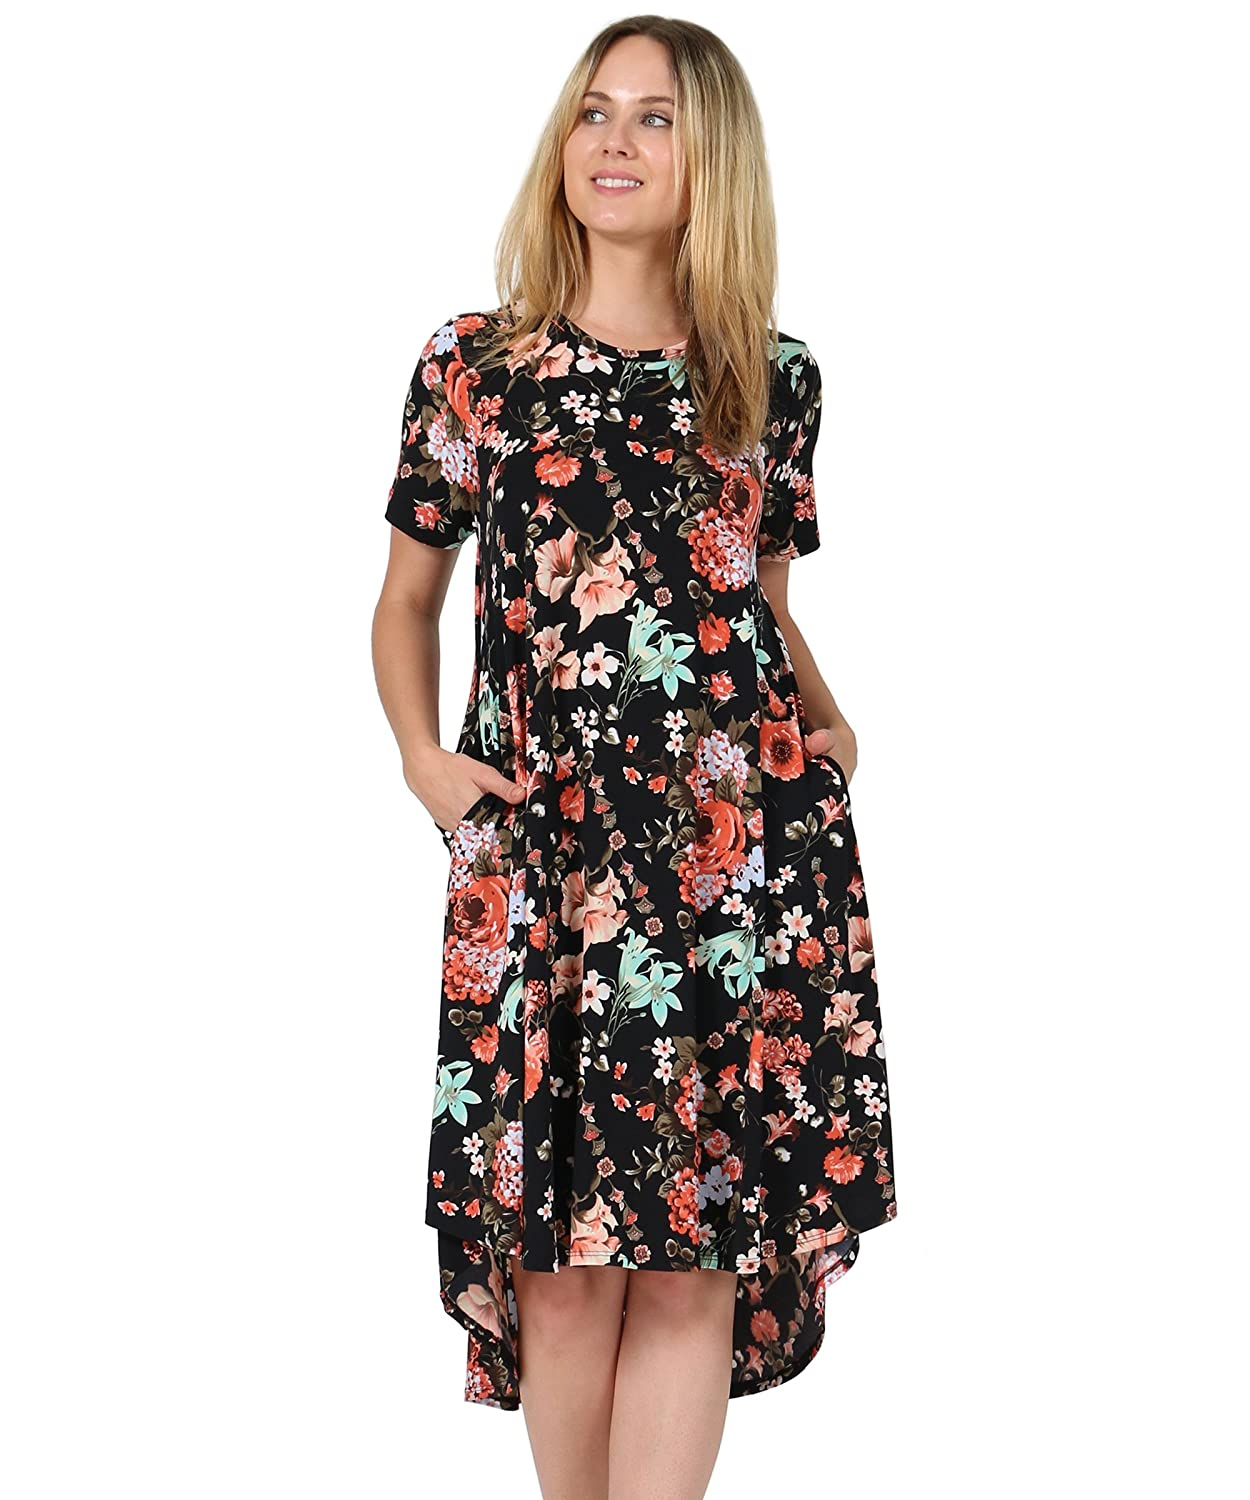 42POPS Women's Short Sleeve Round Neck Floral Hi-Low Swing Casual Dress Side Pockets MADE IN USA SI-5088